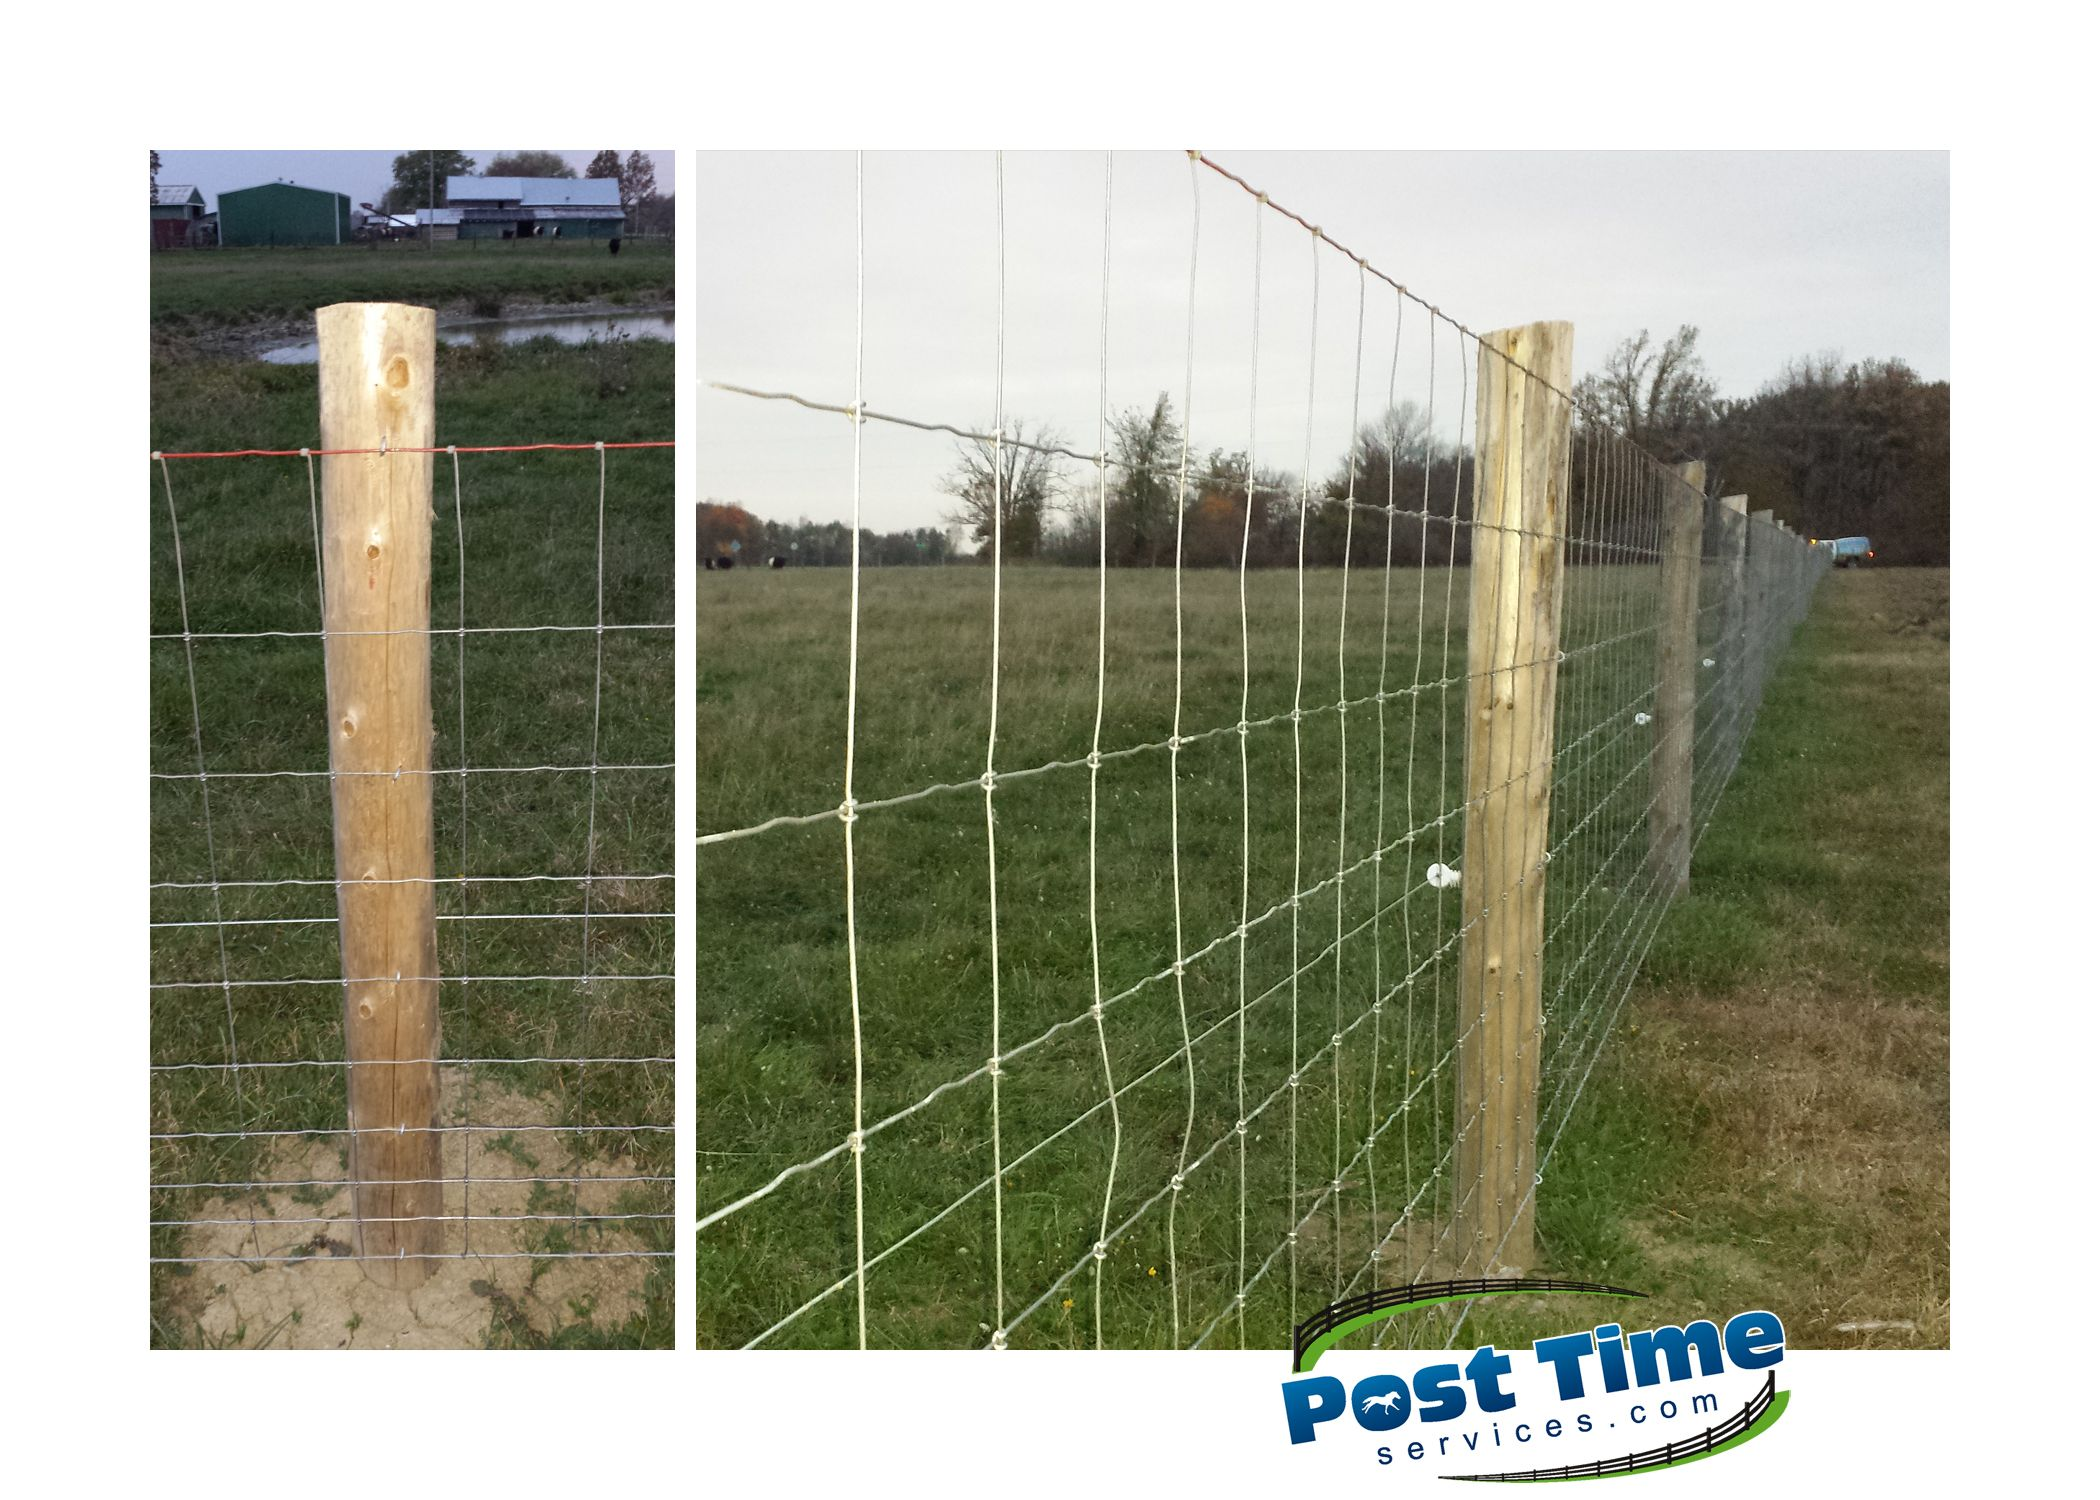 Farm fence paige wire protected with one starnd of electric to keep ...